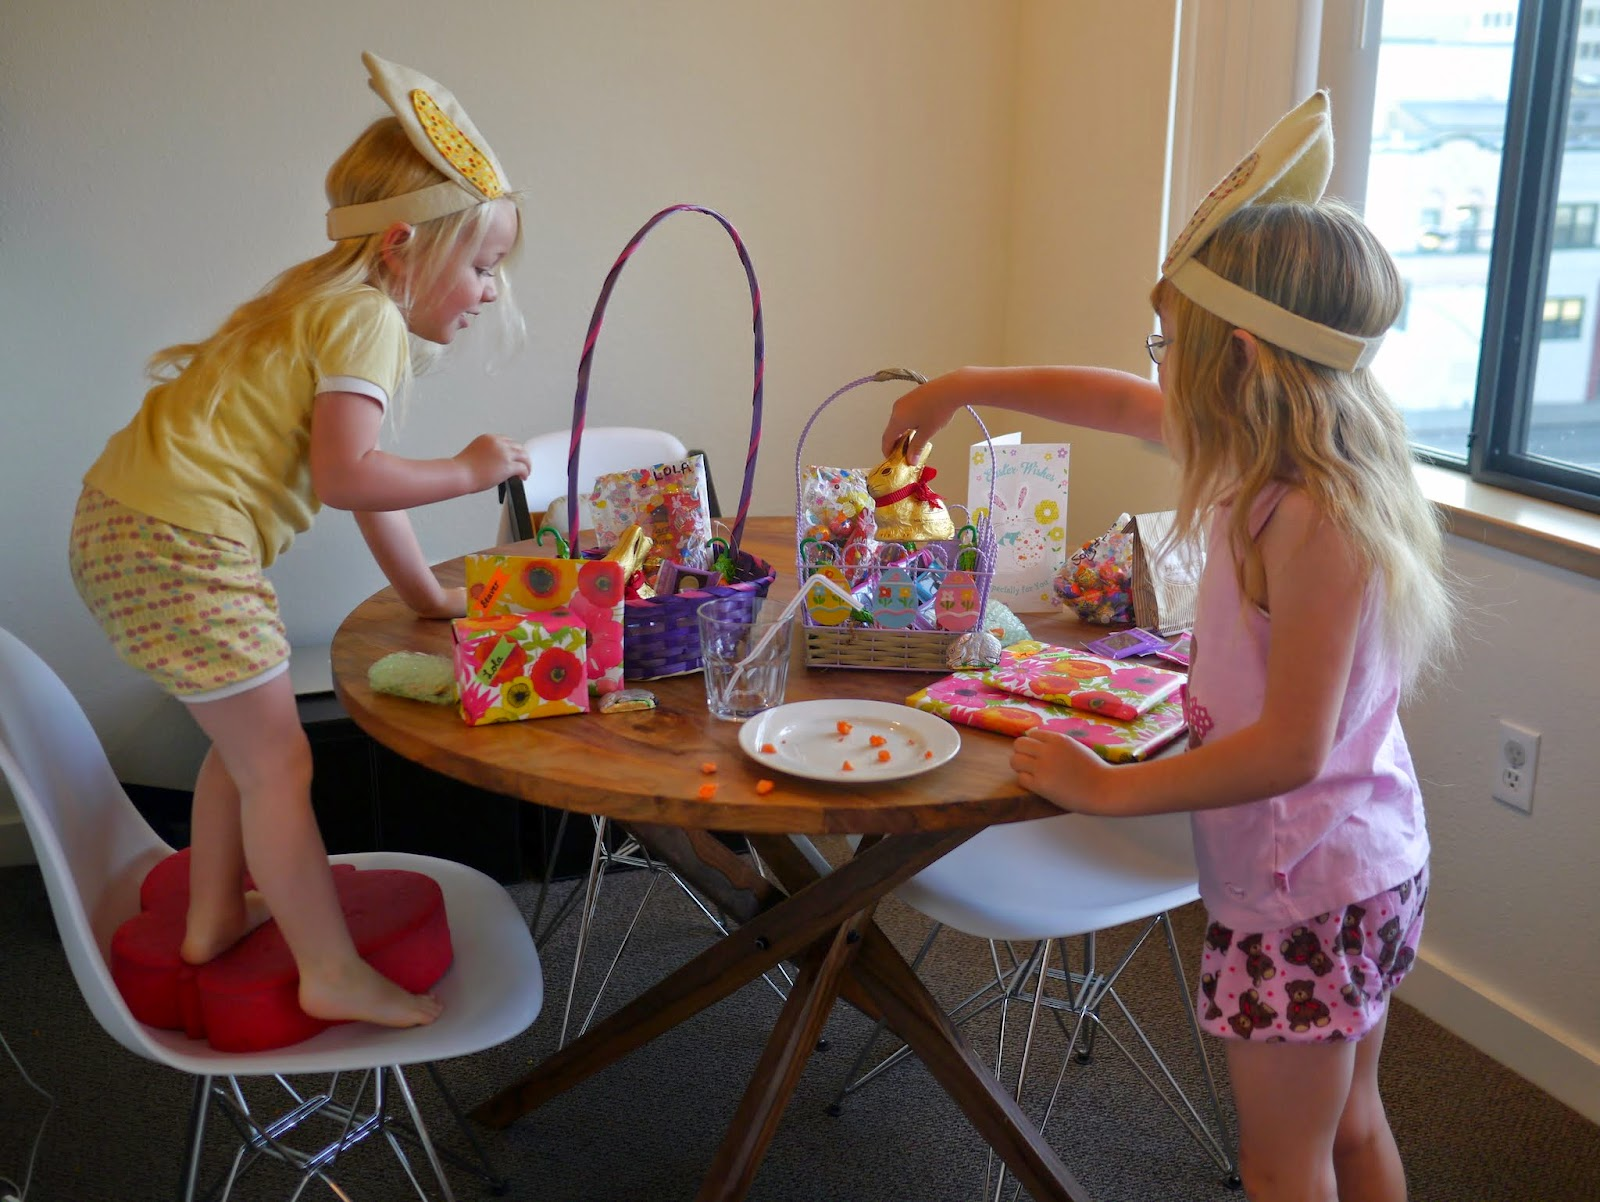 the girls were excited to see that the easter bunny had visited our home